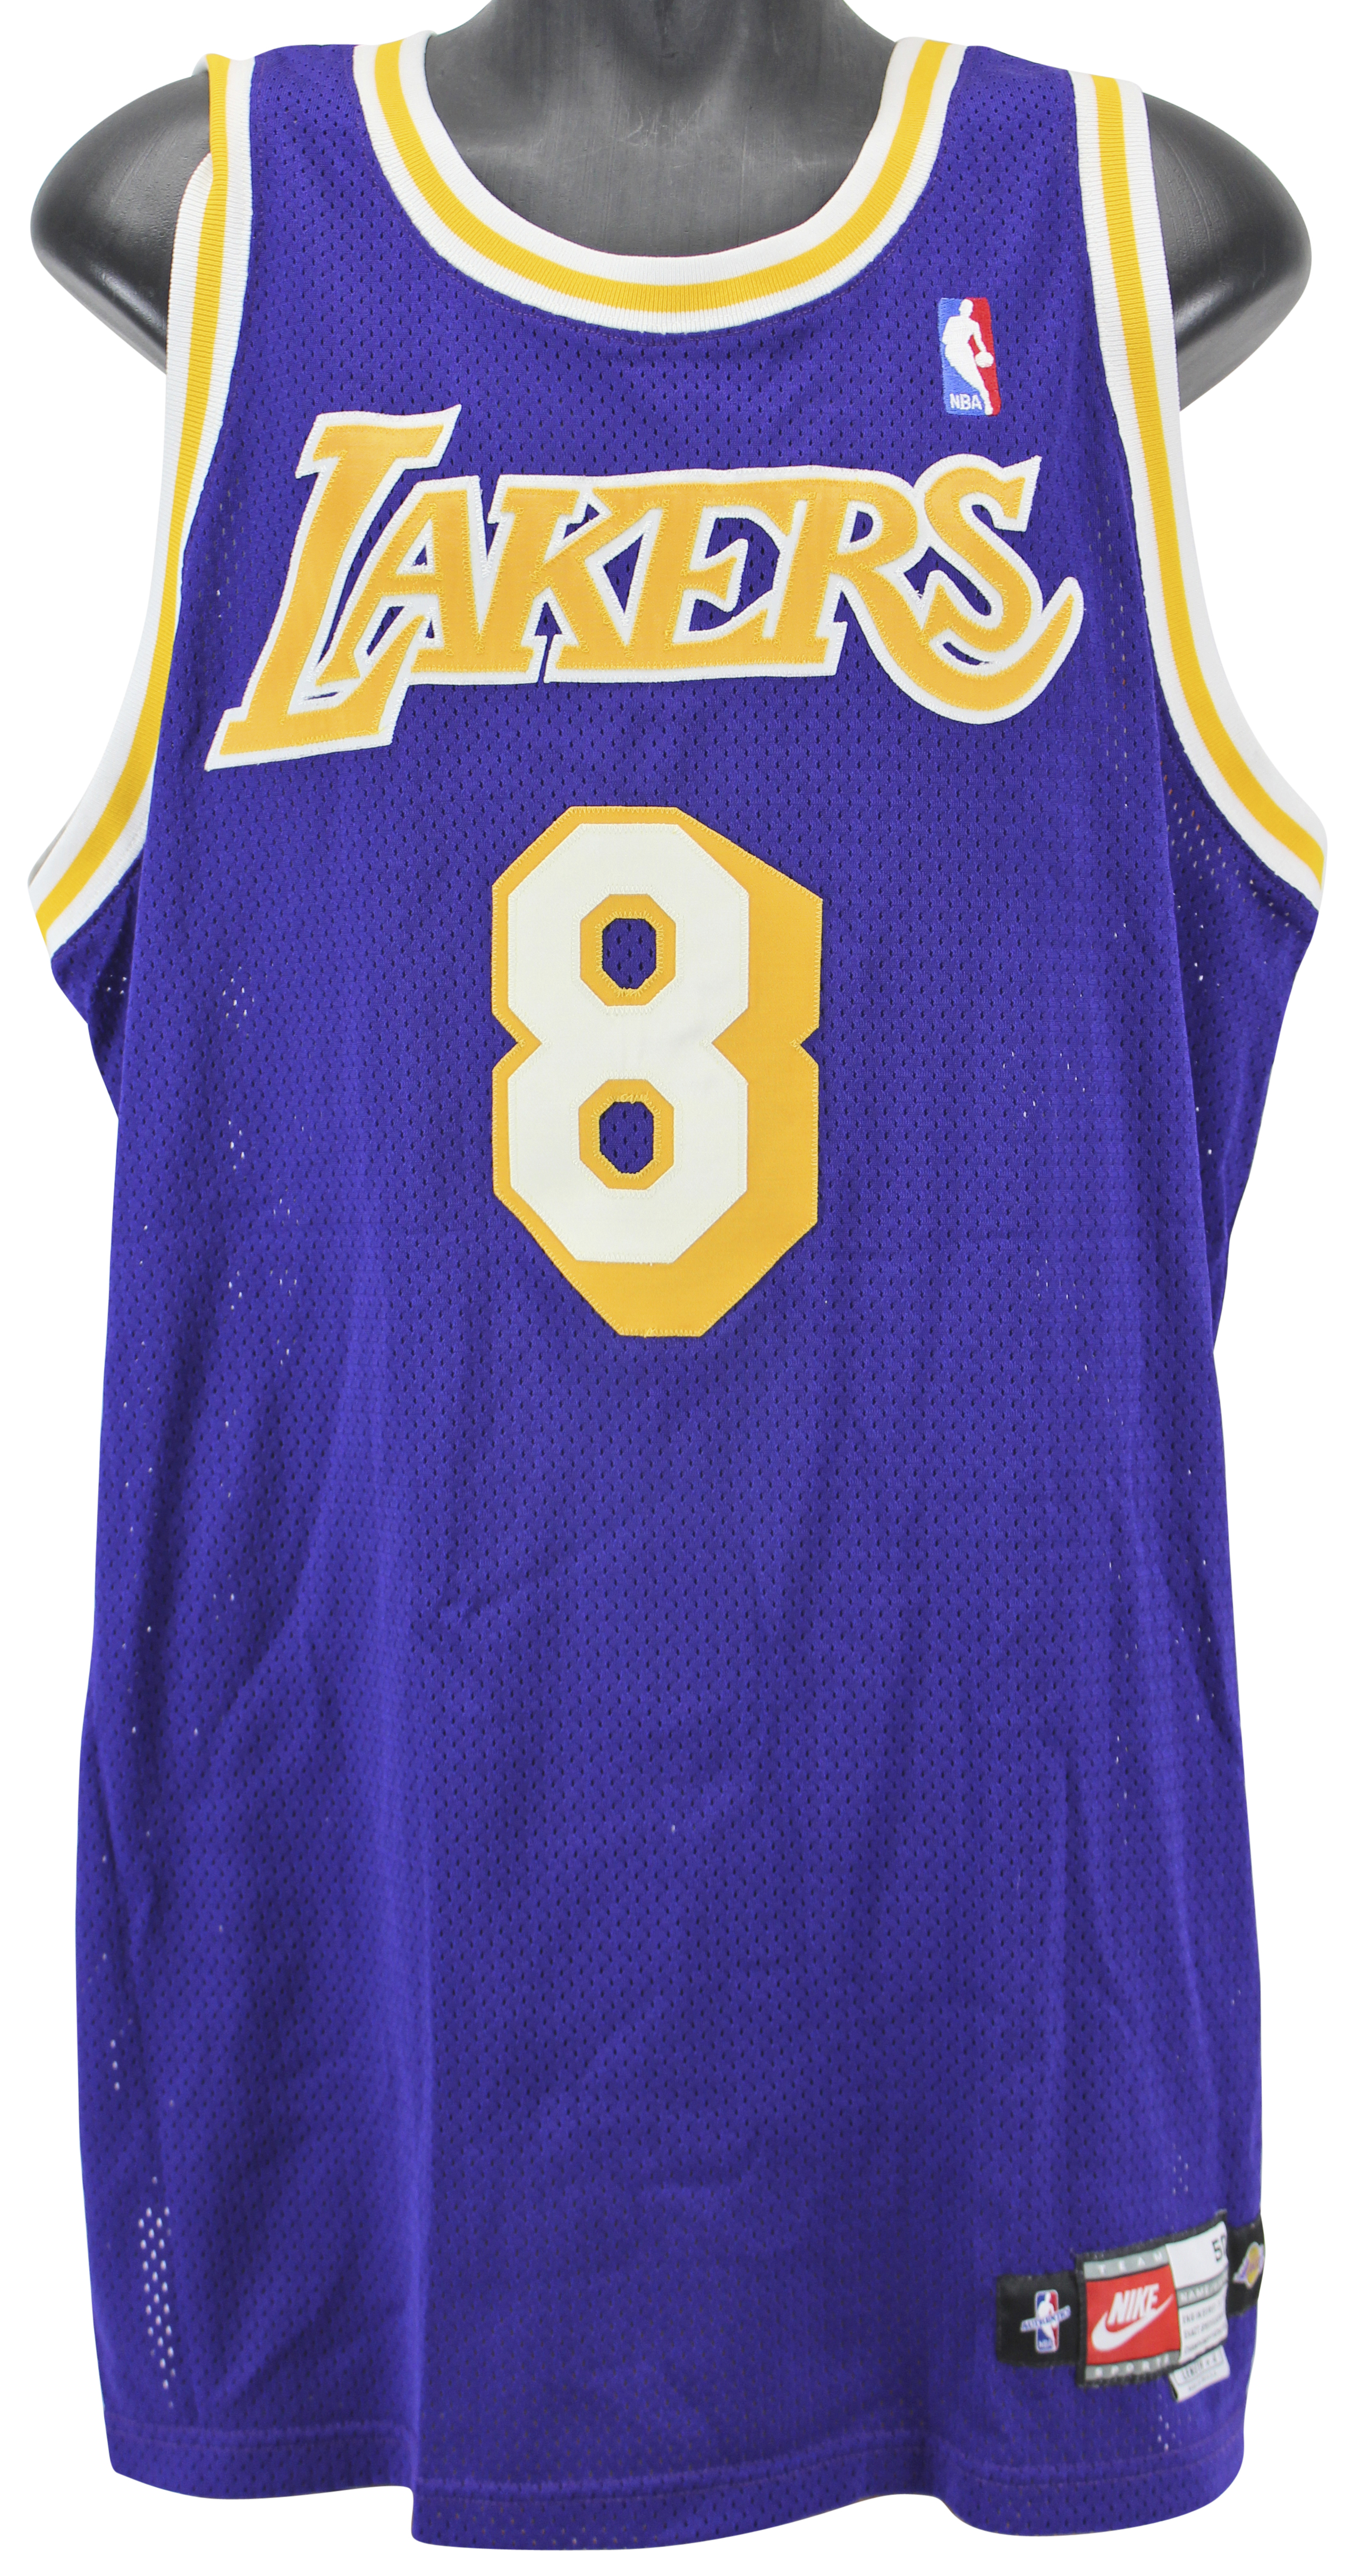 0d8f10a8587 Lakers Kobe Bryant 1998-99 Game Used Nike Jersey MEARS   Grey ...